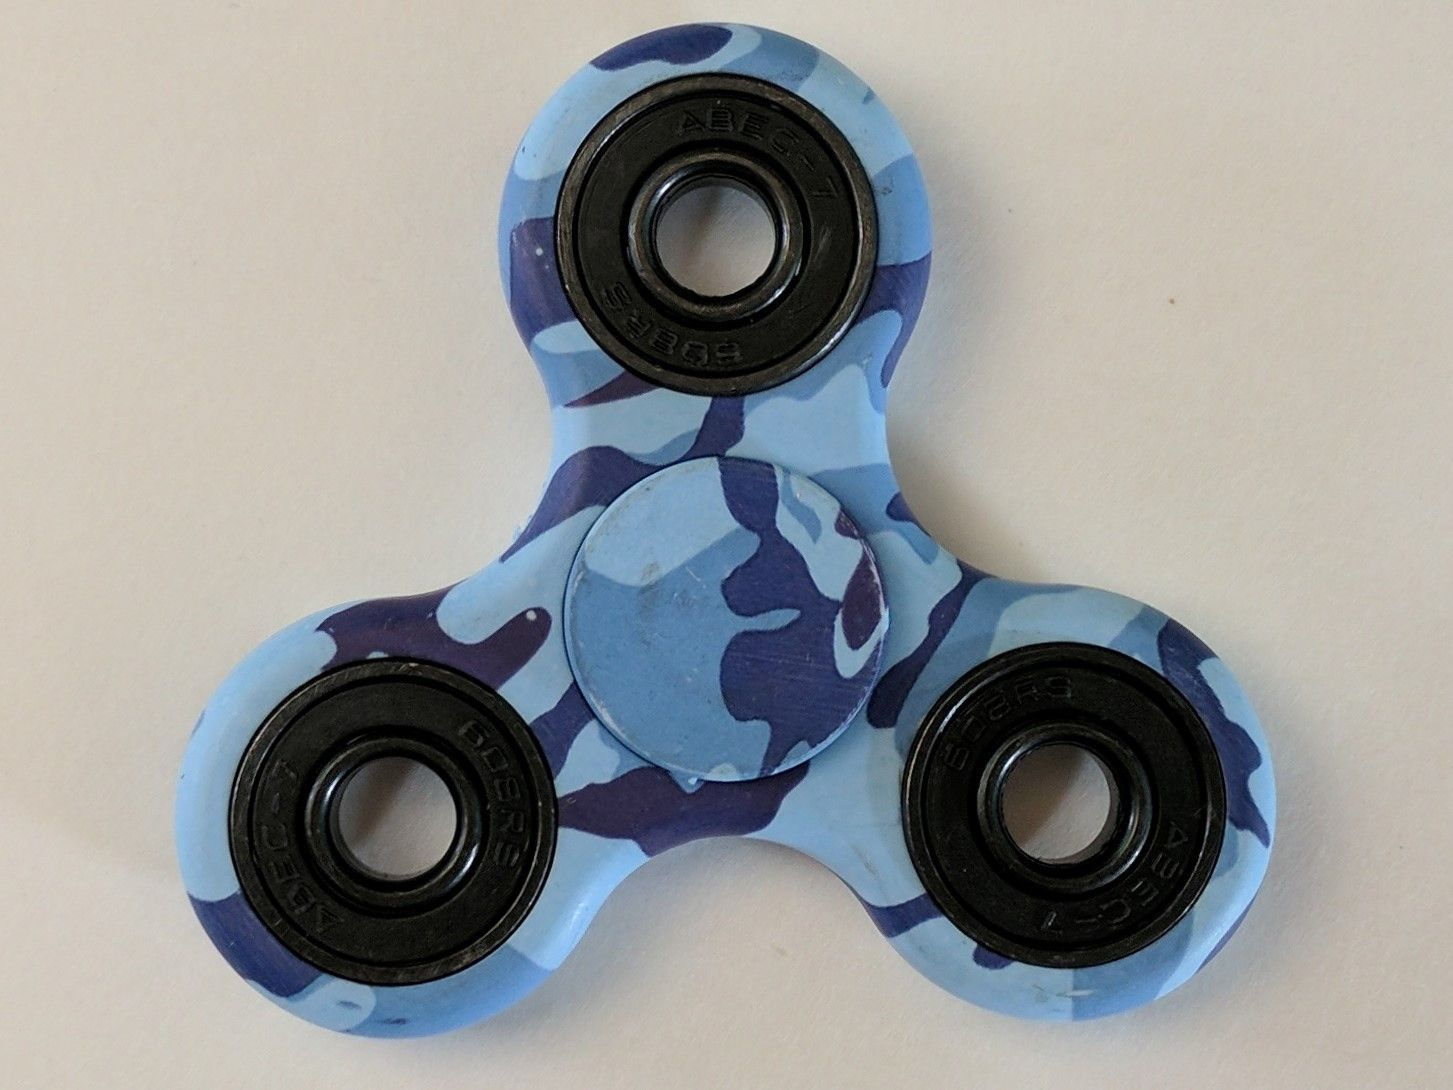 Sy tools custom producing hand spinner torqbar alec bass shells 50 66 - Mixed Colored Triangular Plastic Edc Tri Lever Hand Spinner Fidget Toy